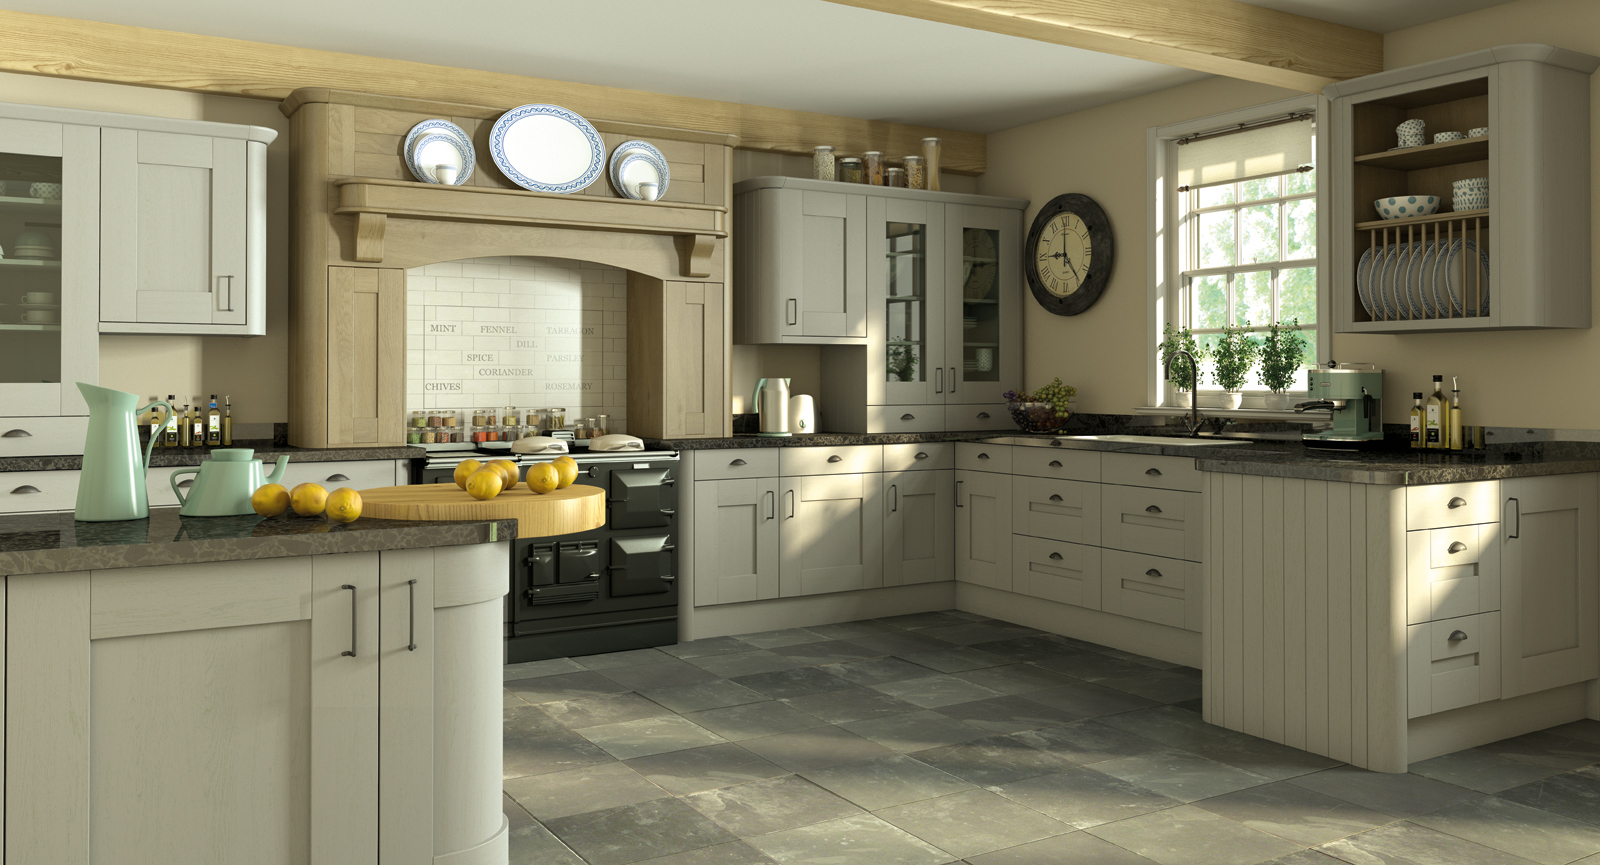 Hand painted shaker kitchens hallmark kitchen designs for Where to get a kitchen from